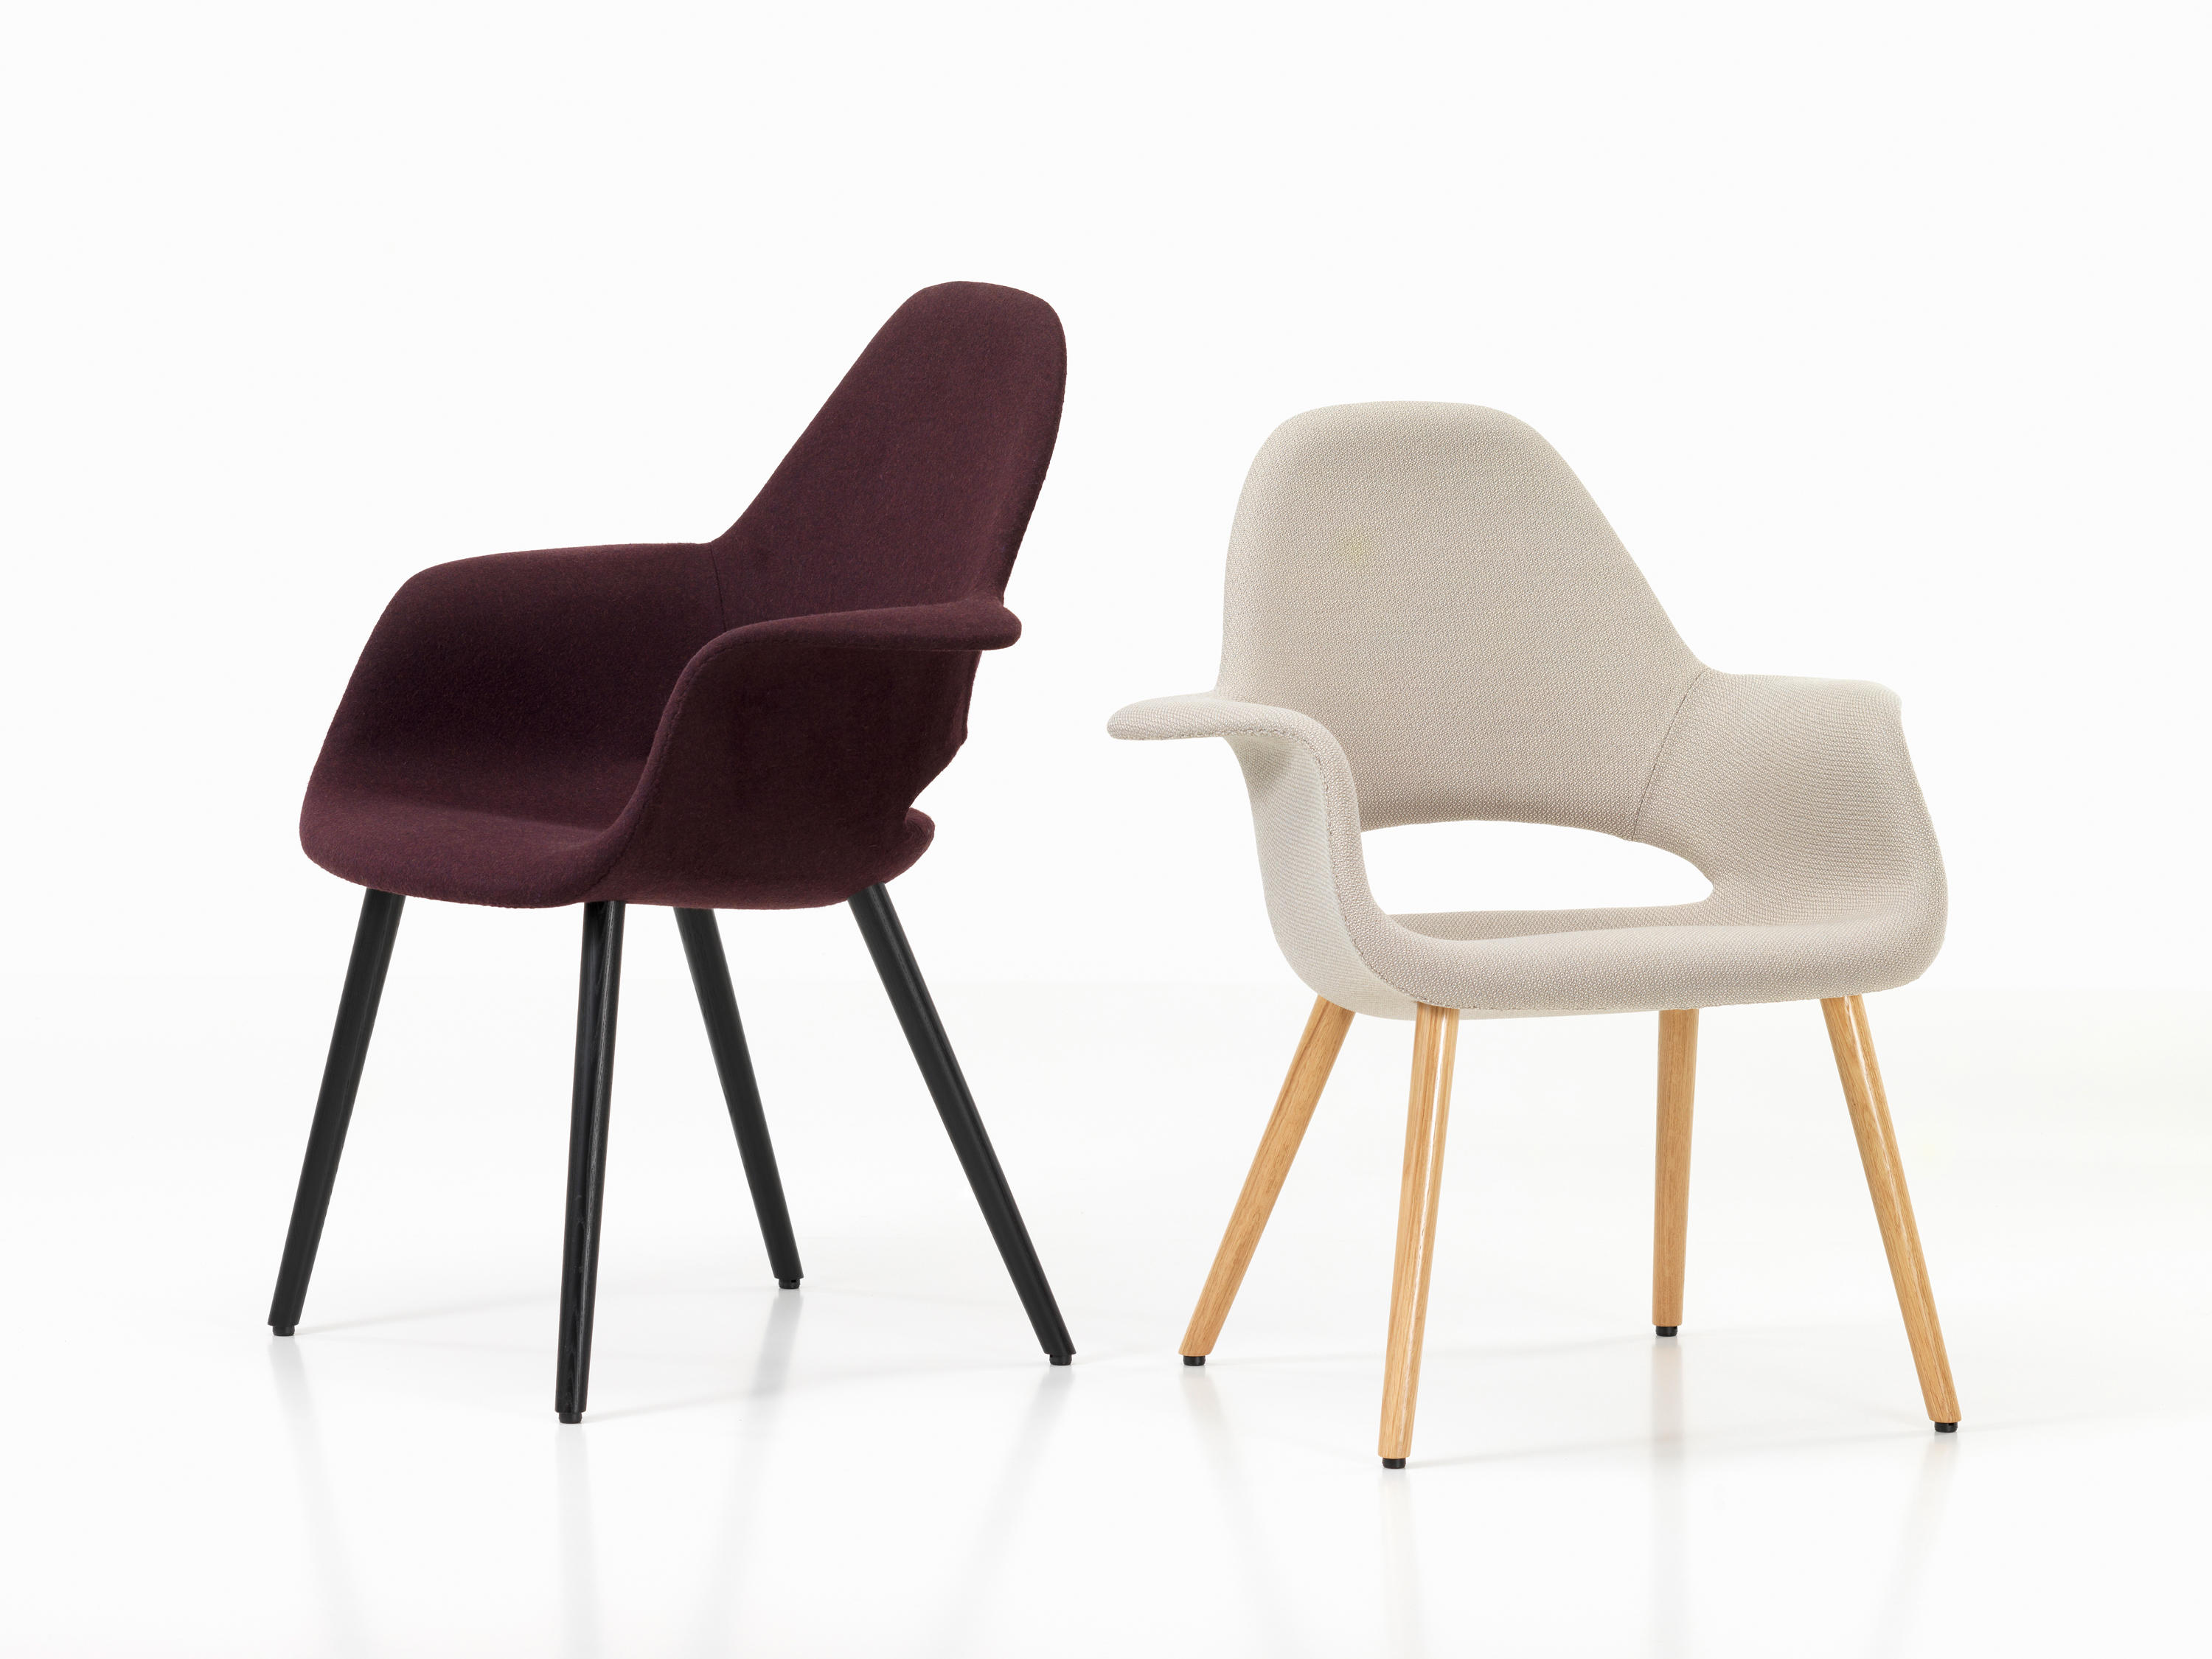 vitra chaise eames awesome articles with chaise design pas cher eames tag mesmerizing chaise ou. Black Bedroom Furniture Sets. Home Design Ideas